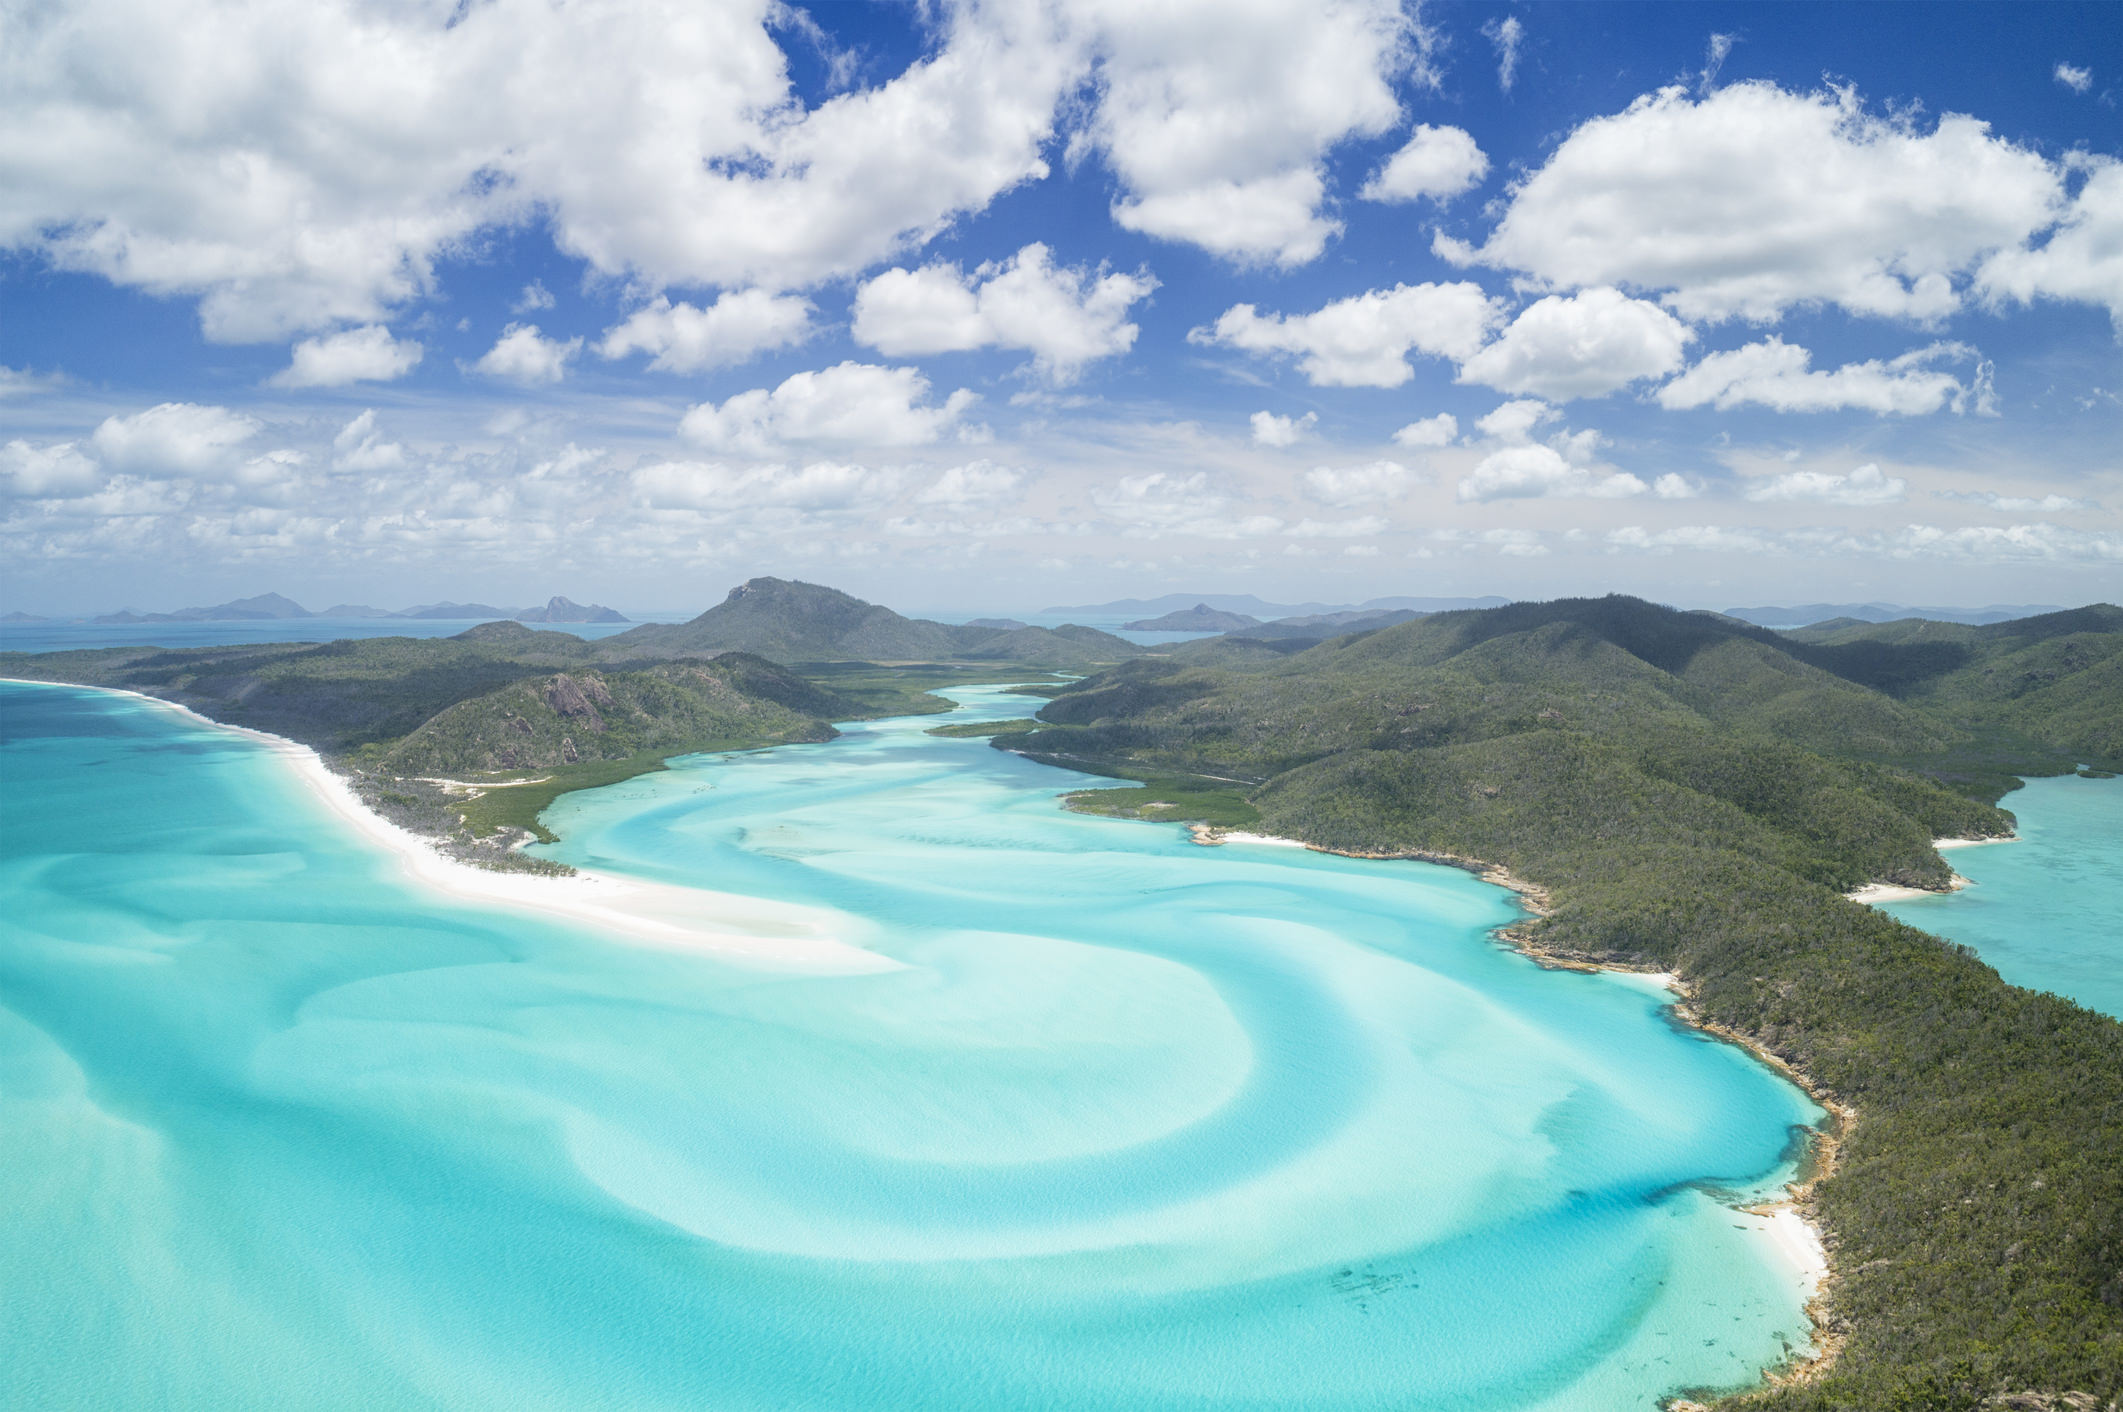 Whitsunday-Inseln-Great-Barrier-Reef